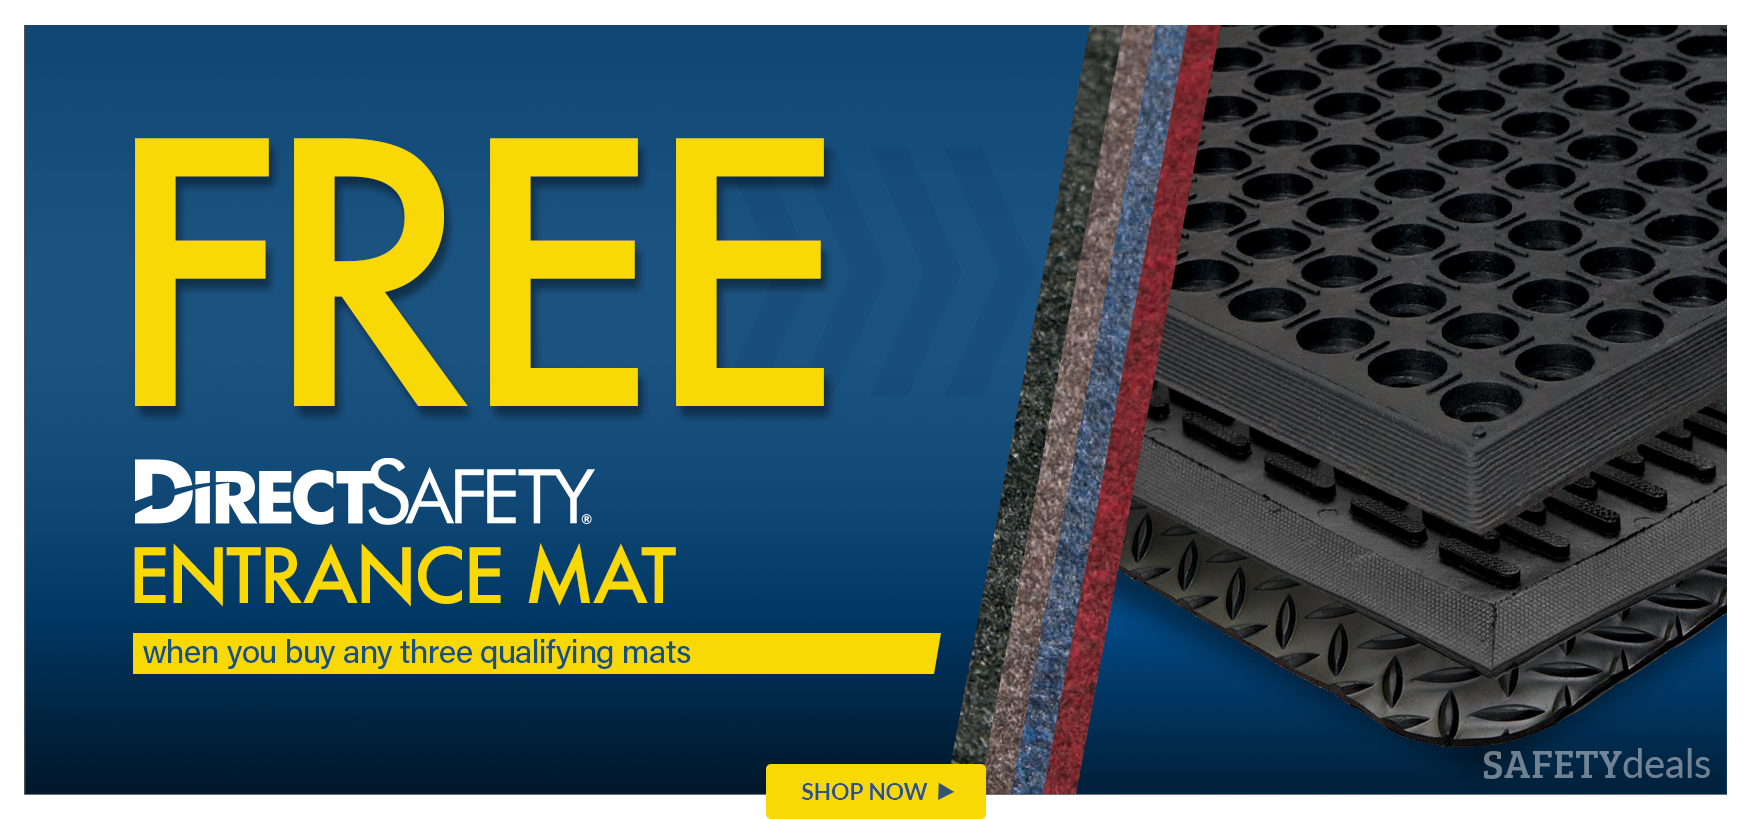 Buy 3 qualifying Direct Safety Mats, Get a FREE Direct Safety Entrance Mat